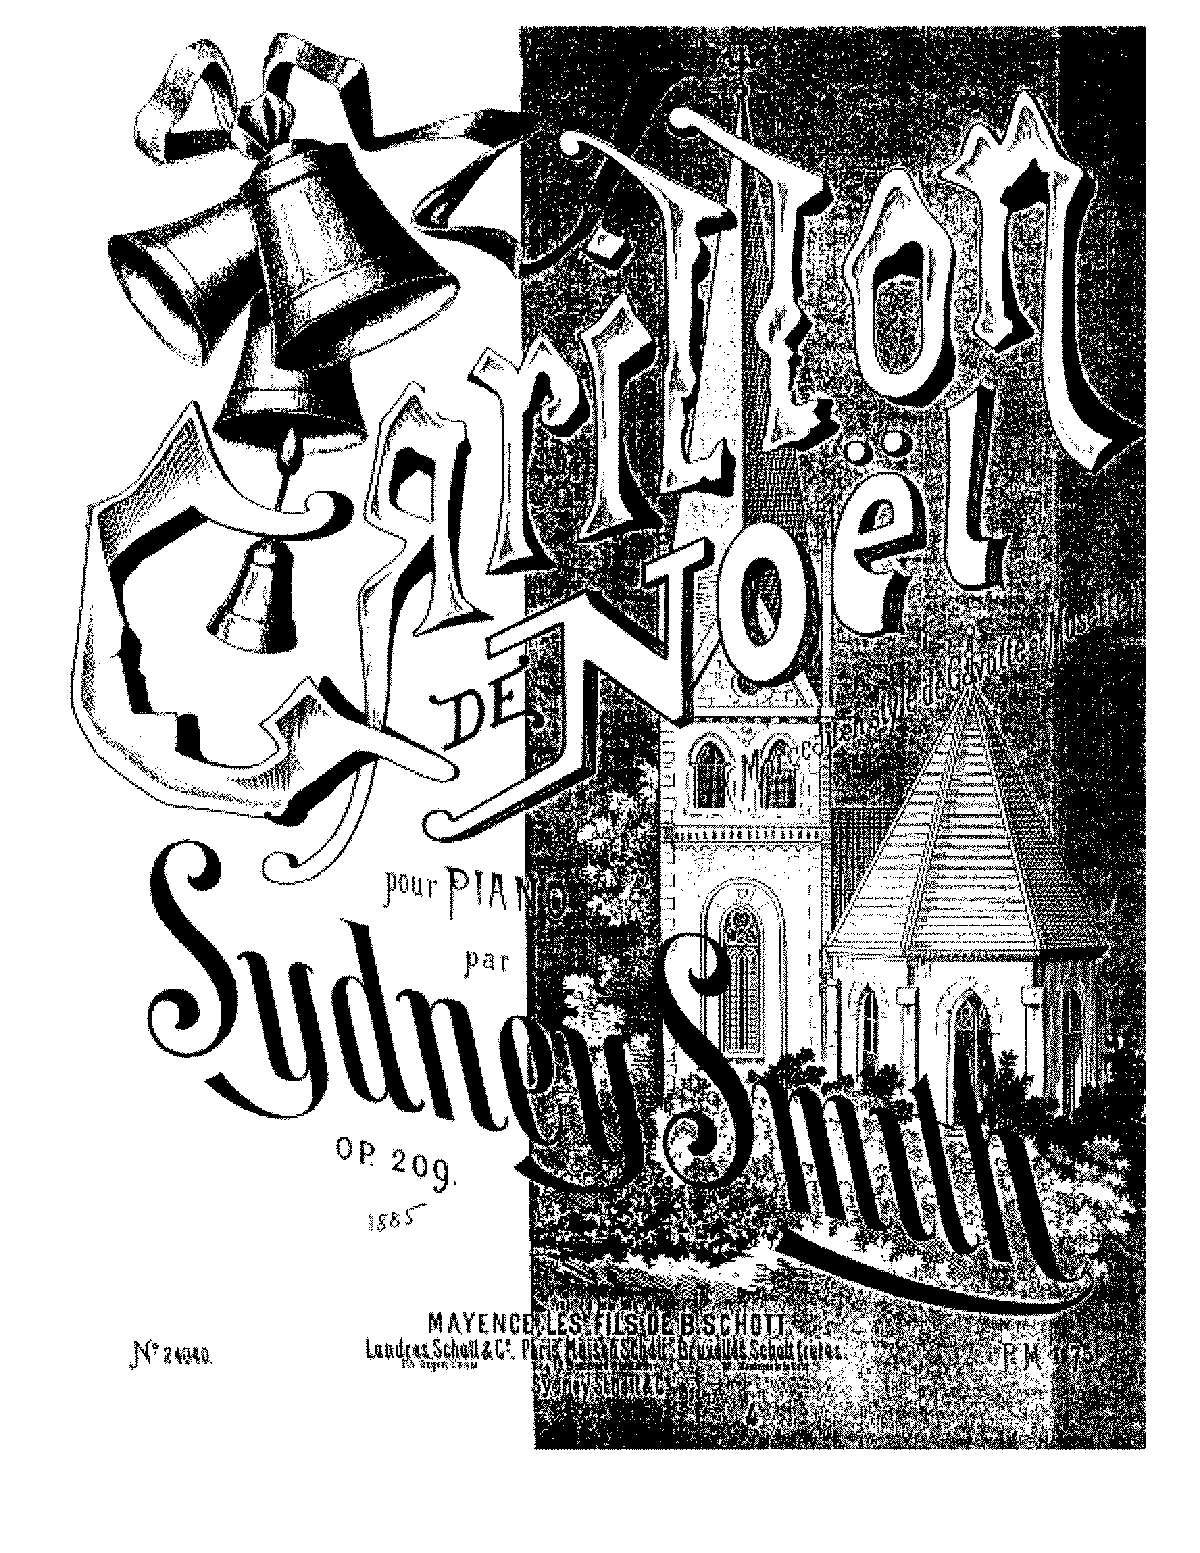 Smith, Sydney op209 carillon de noel.pdf